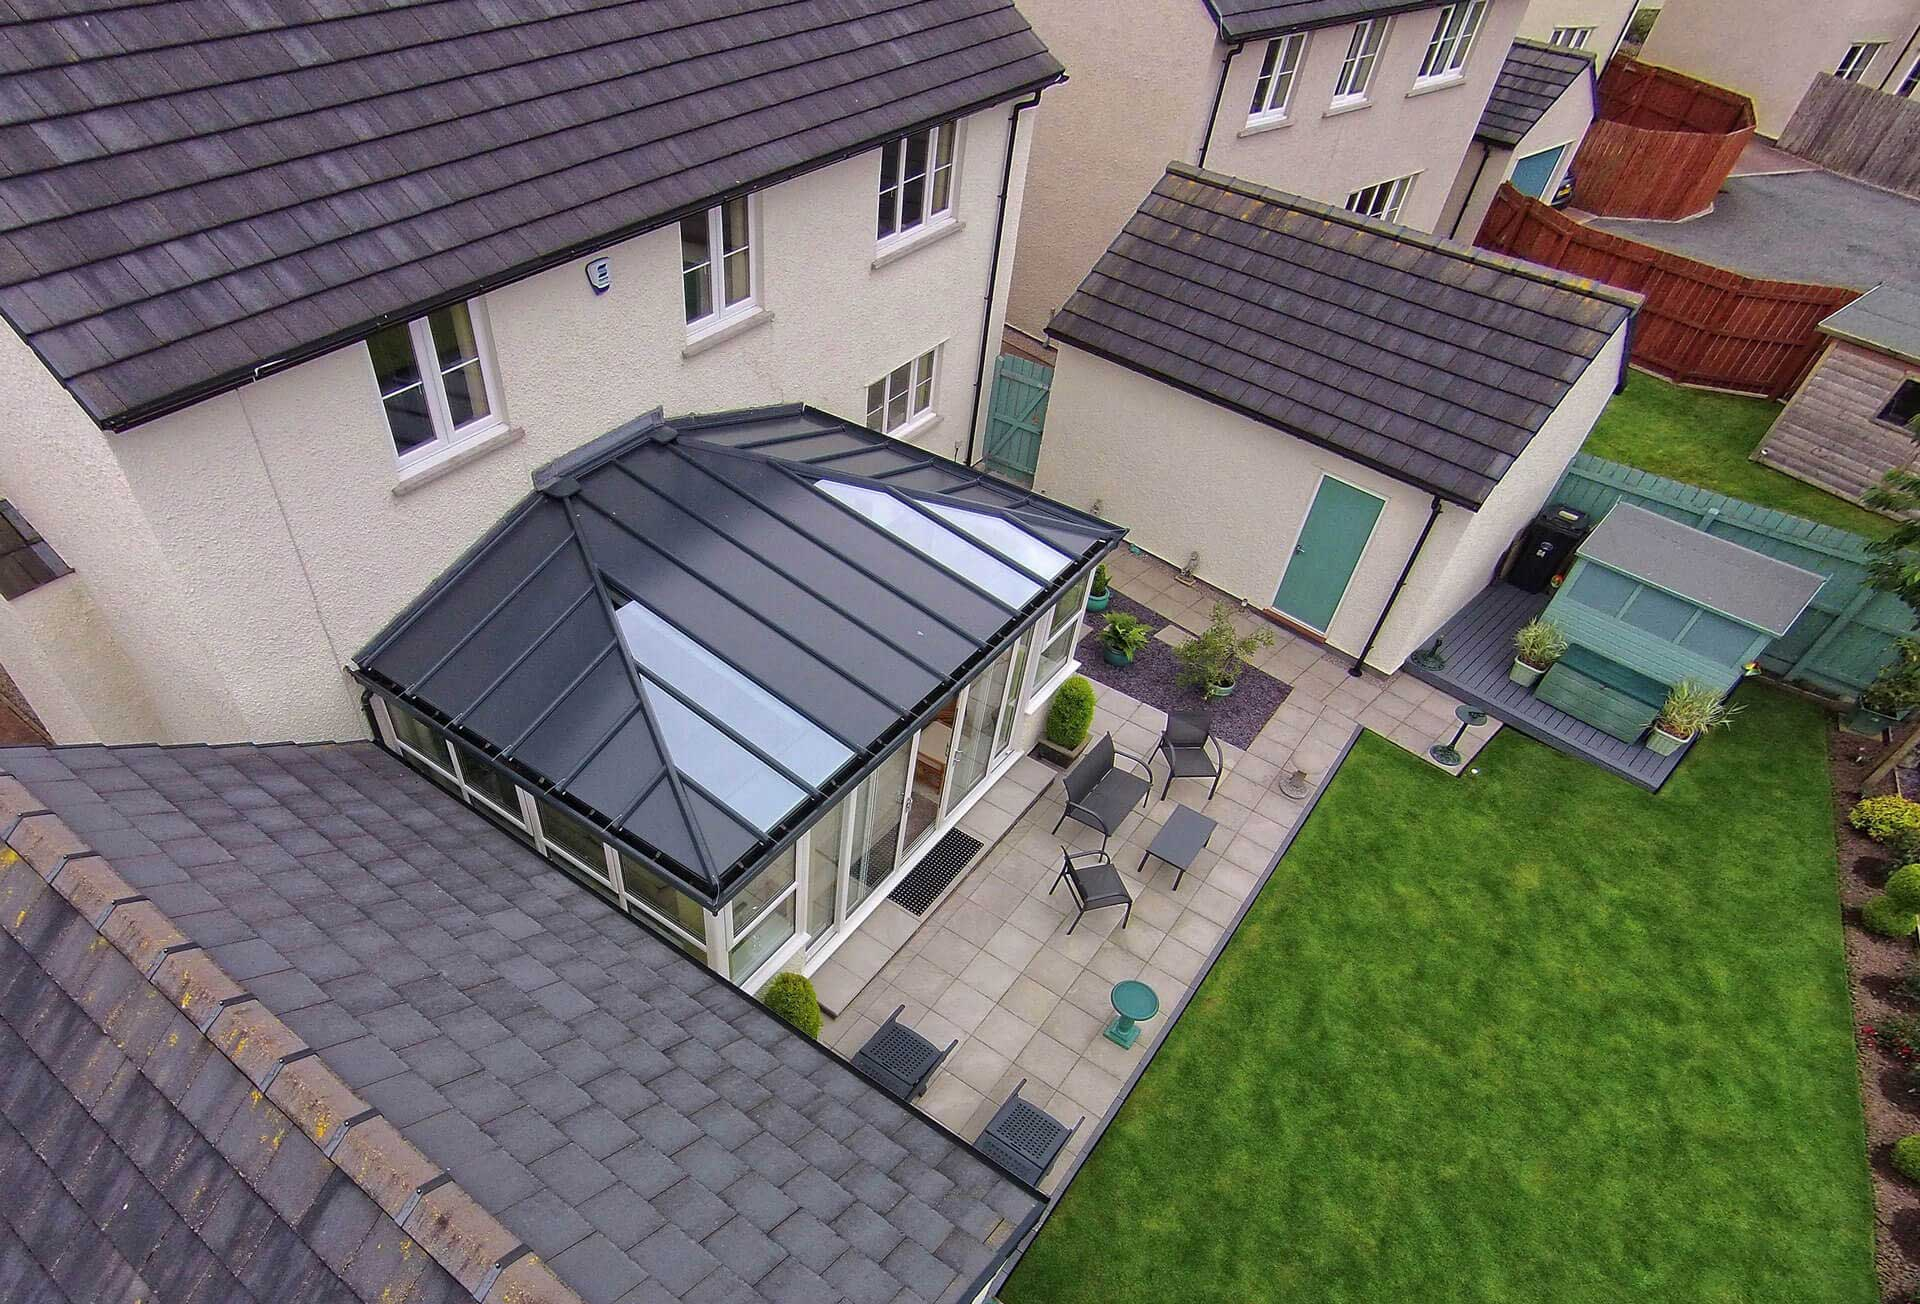 double glazed replacement Conservatory Roofs northallerton